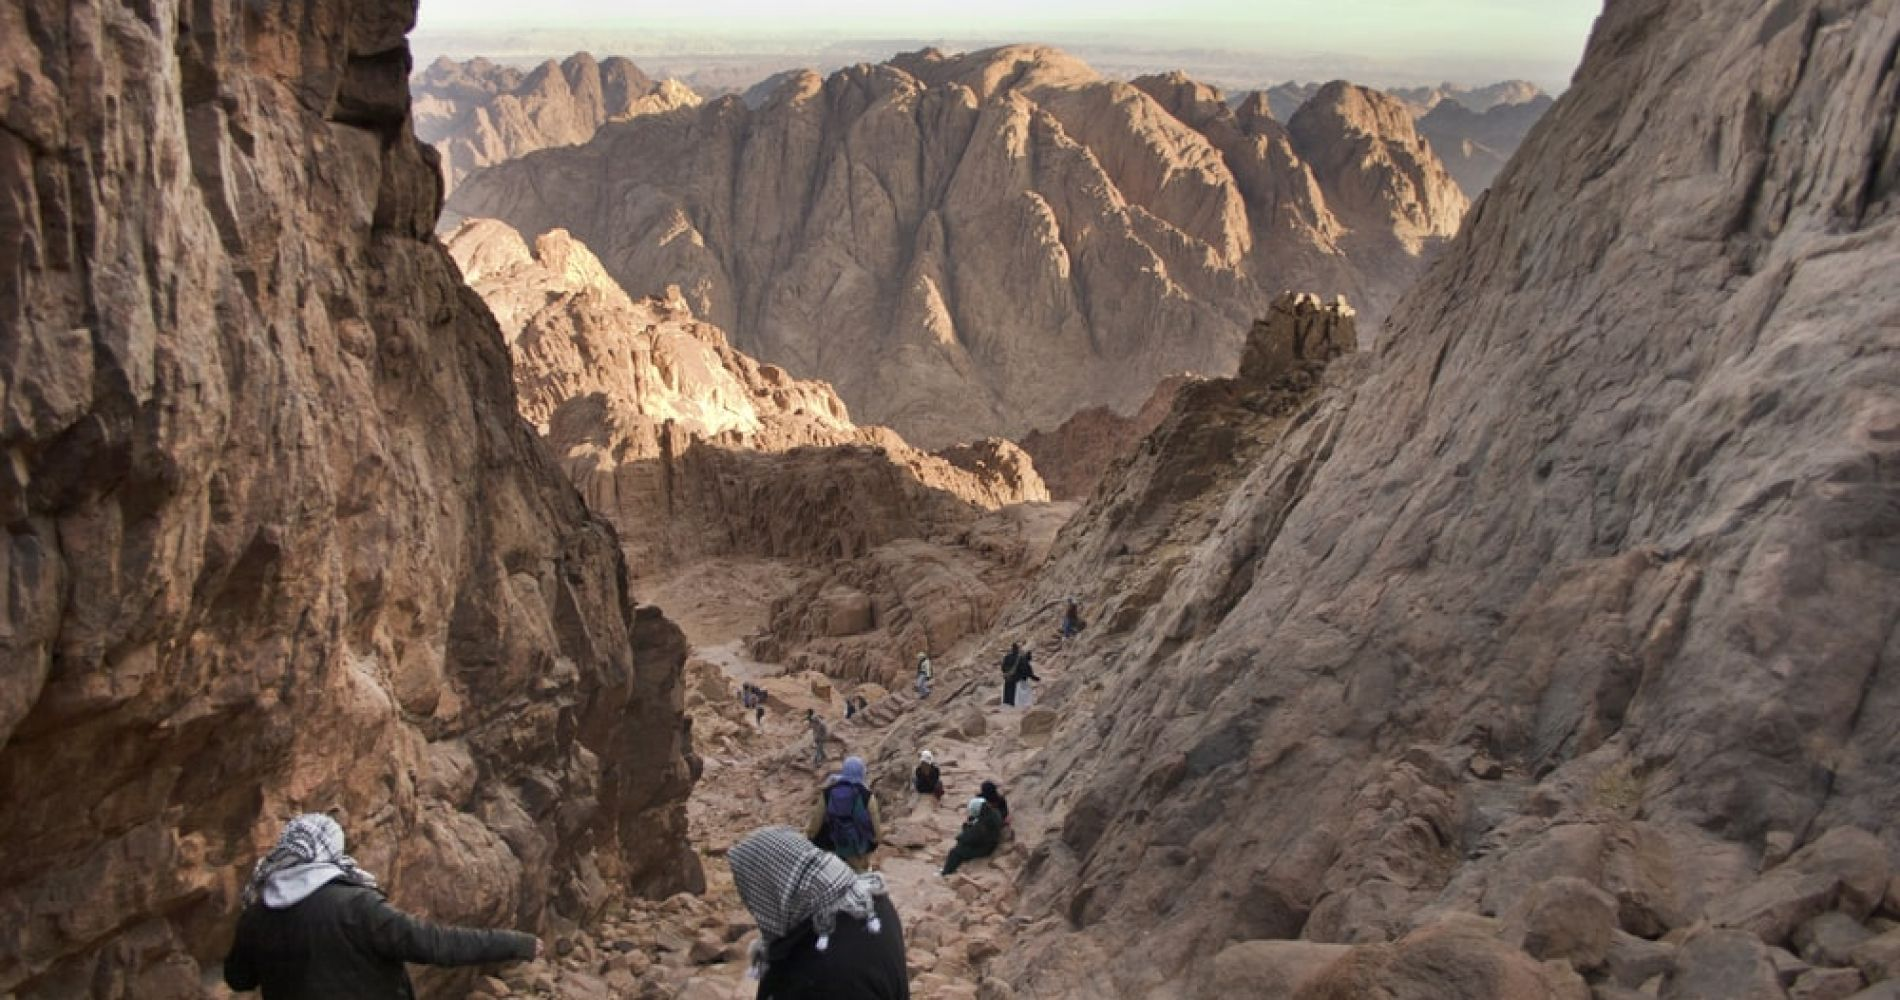 Hike to the Top of Mount Sinai